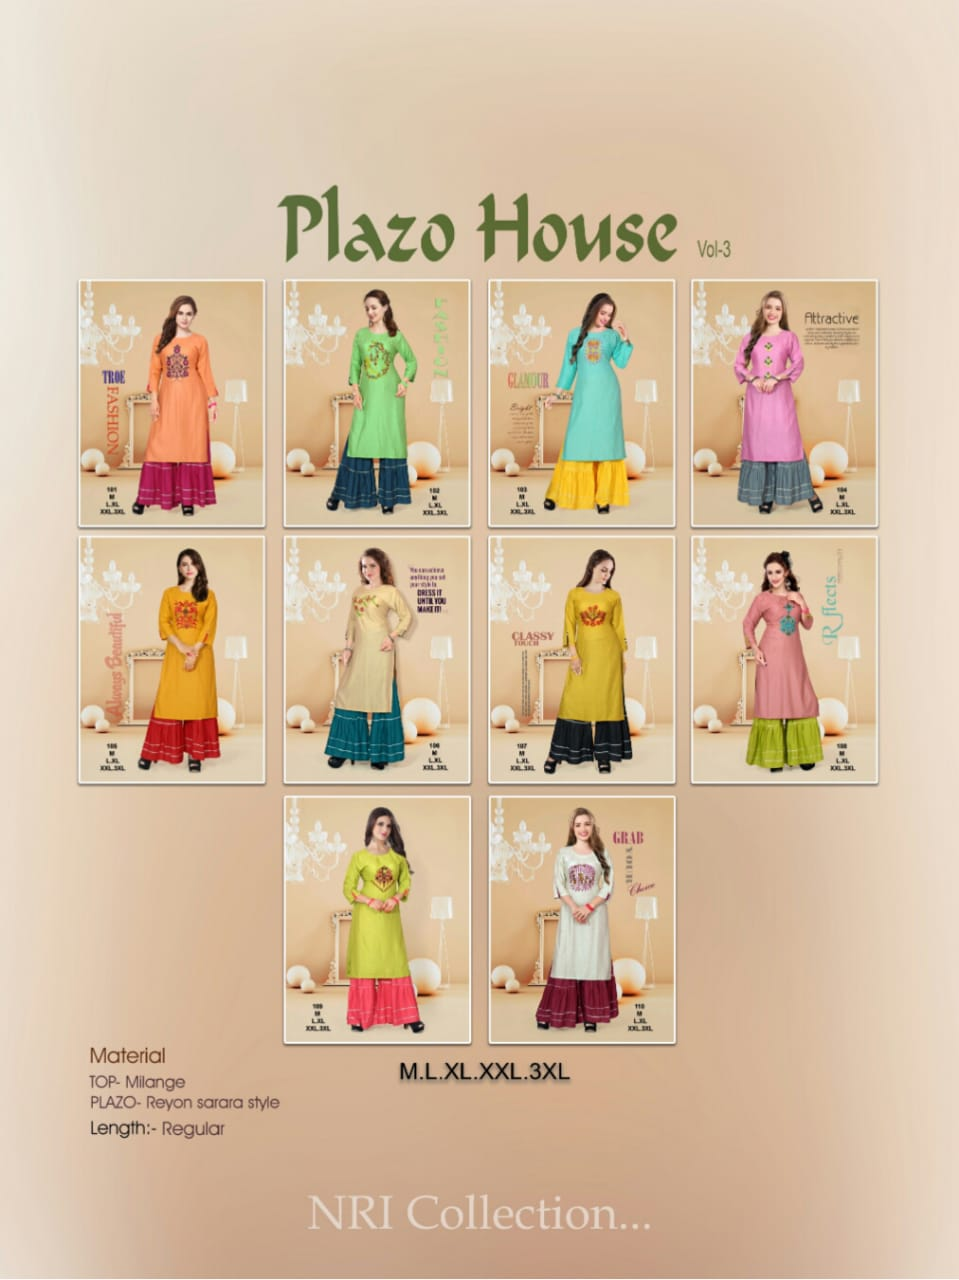 Ft Plazo House 3 collection 3